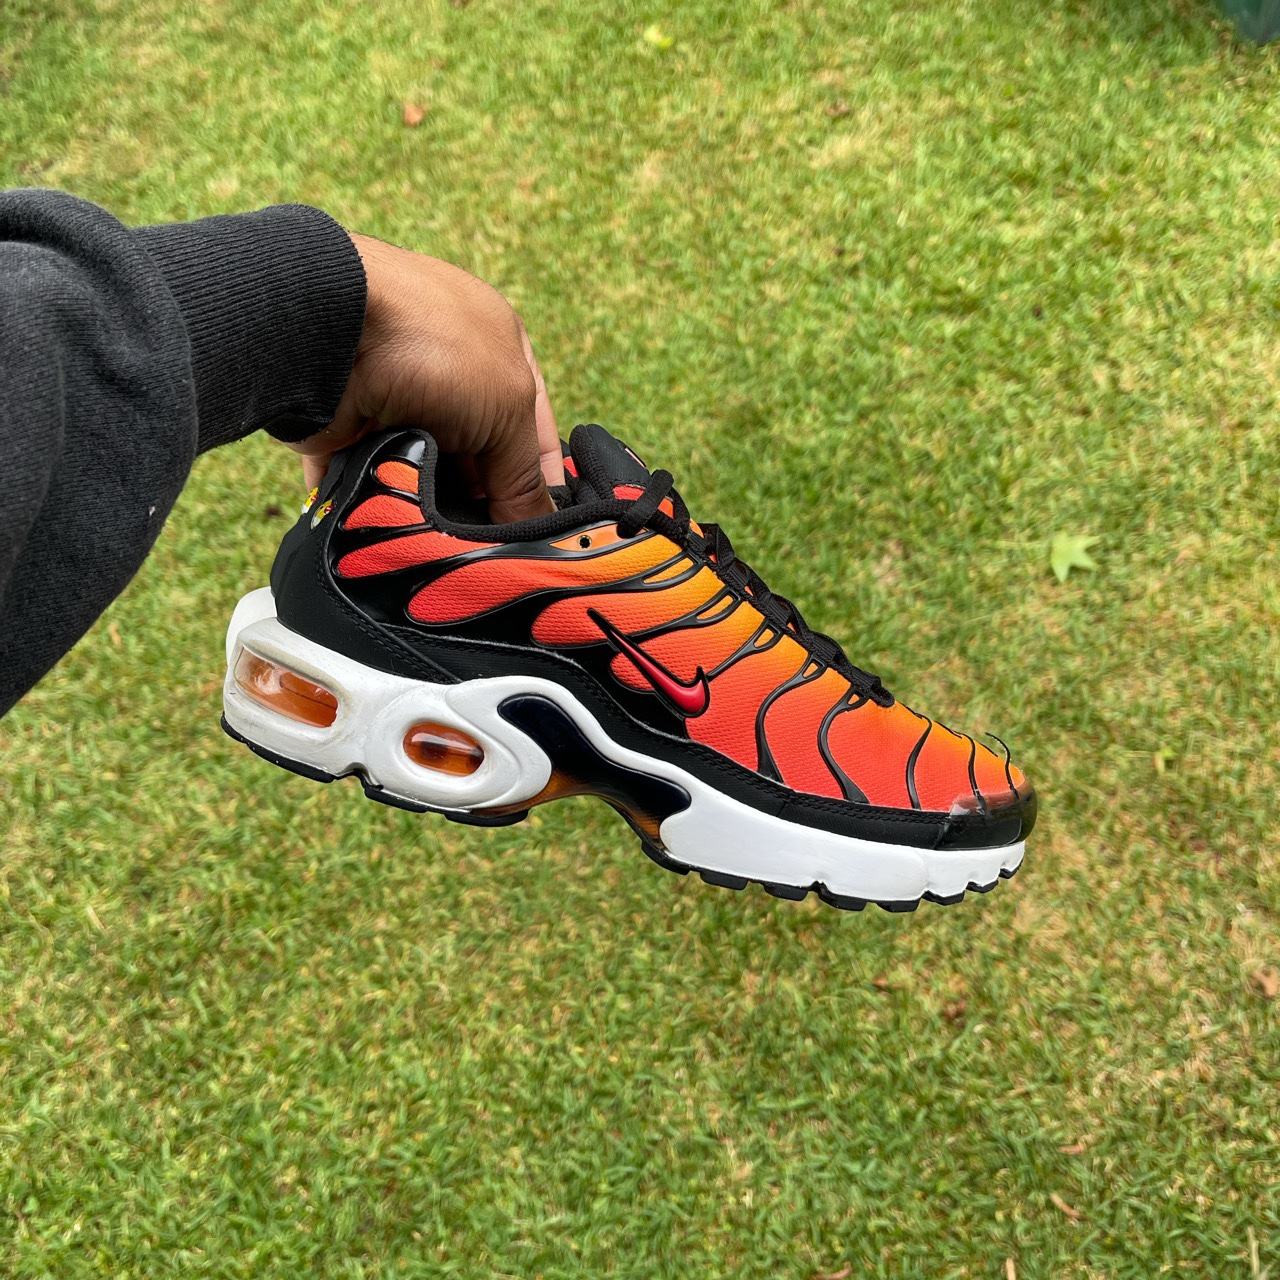 """Product Image 1 - Nike Air Max Plus """"Sunset"""""""